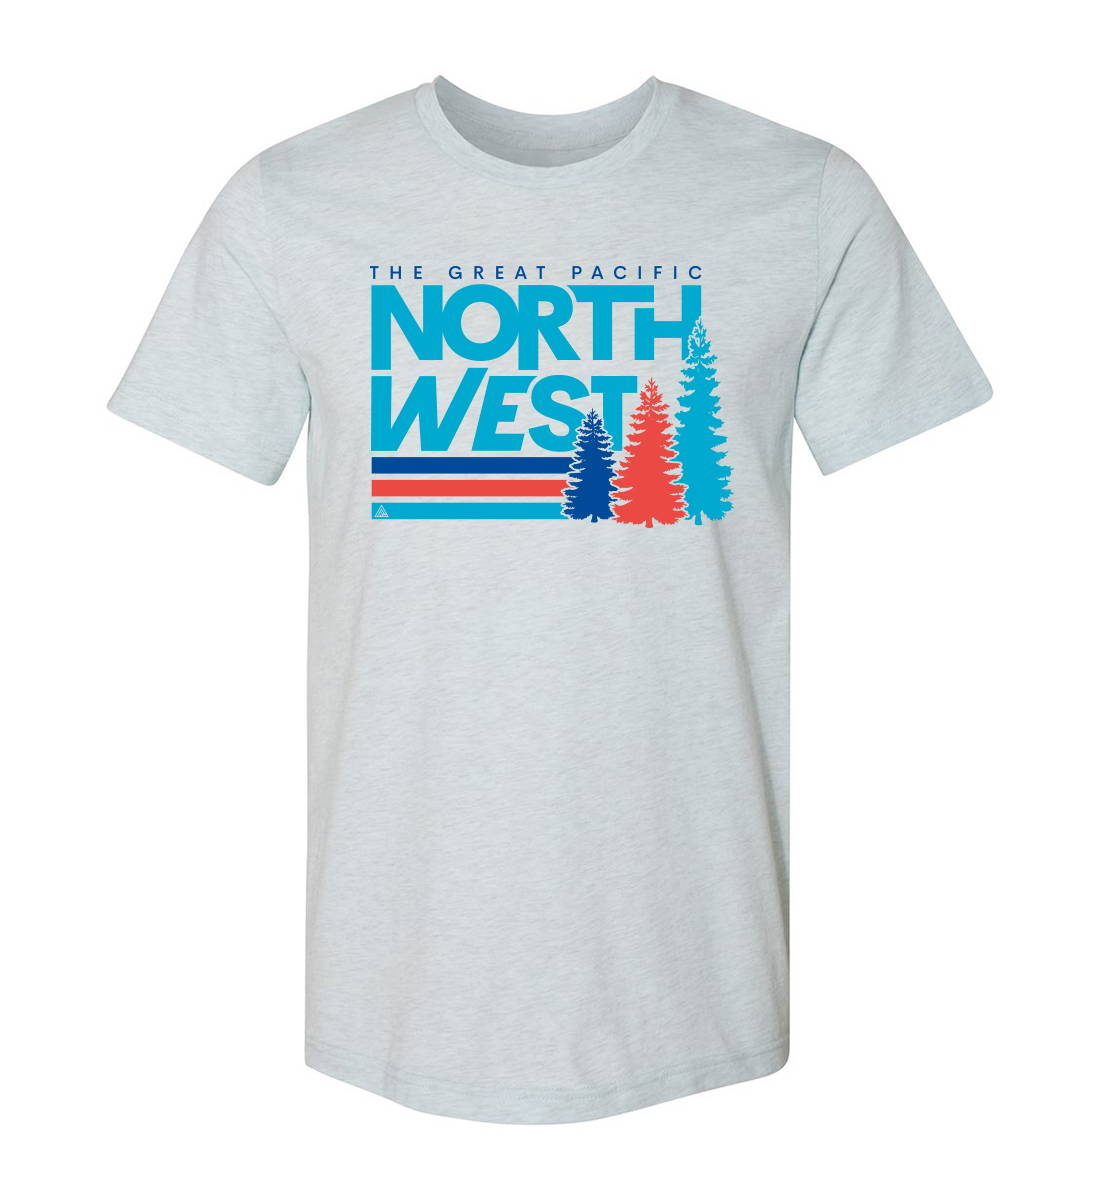 The Great PNW Lift Tee